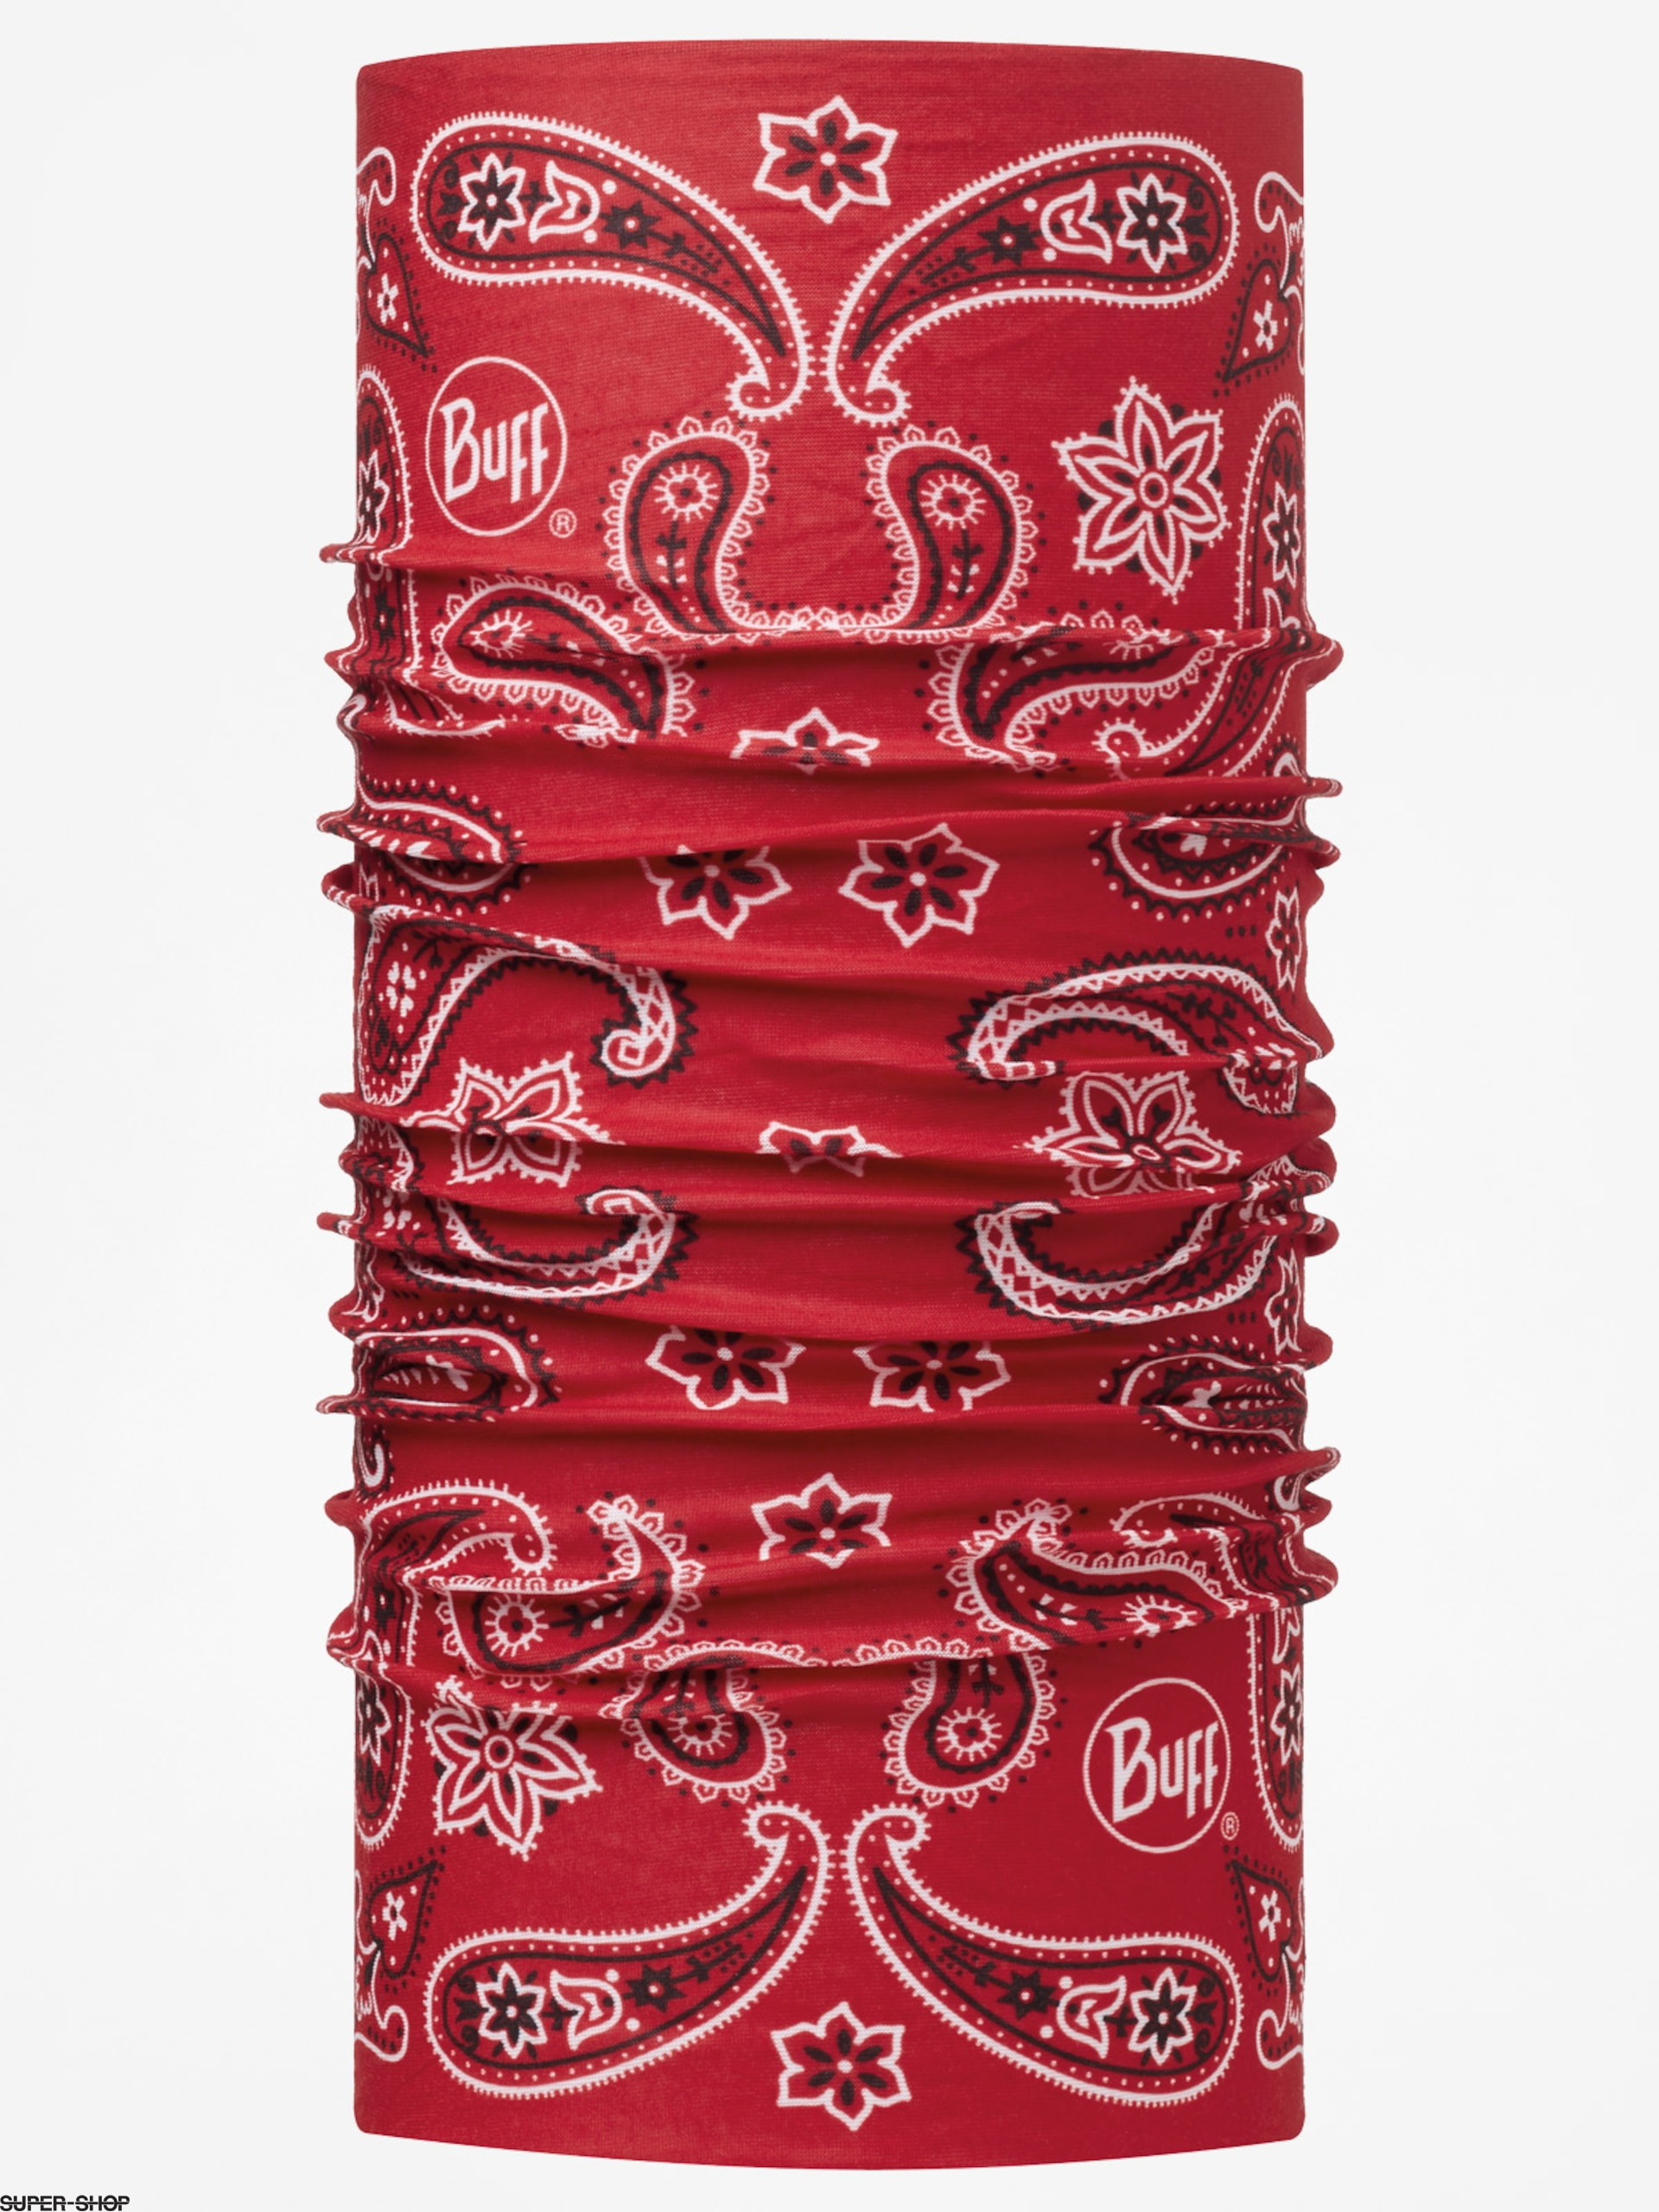 Buff Bandana Original (cashmere red)